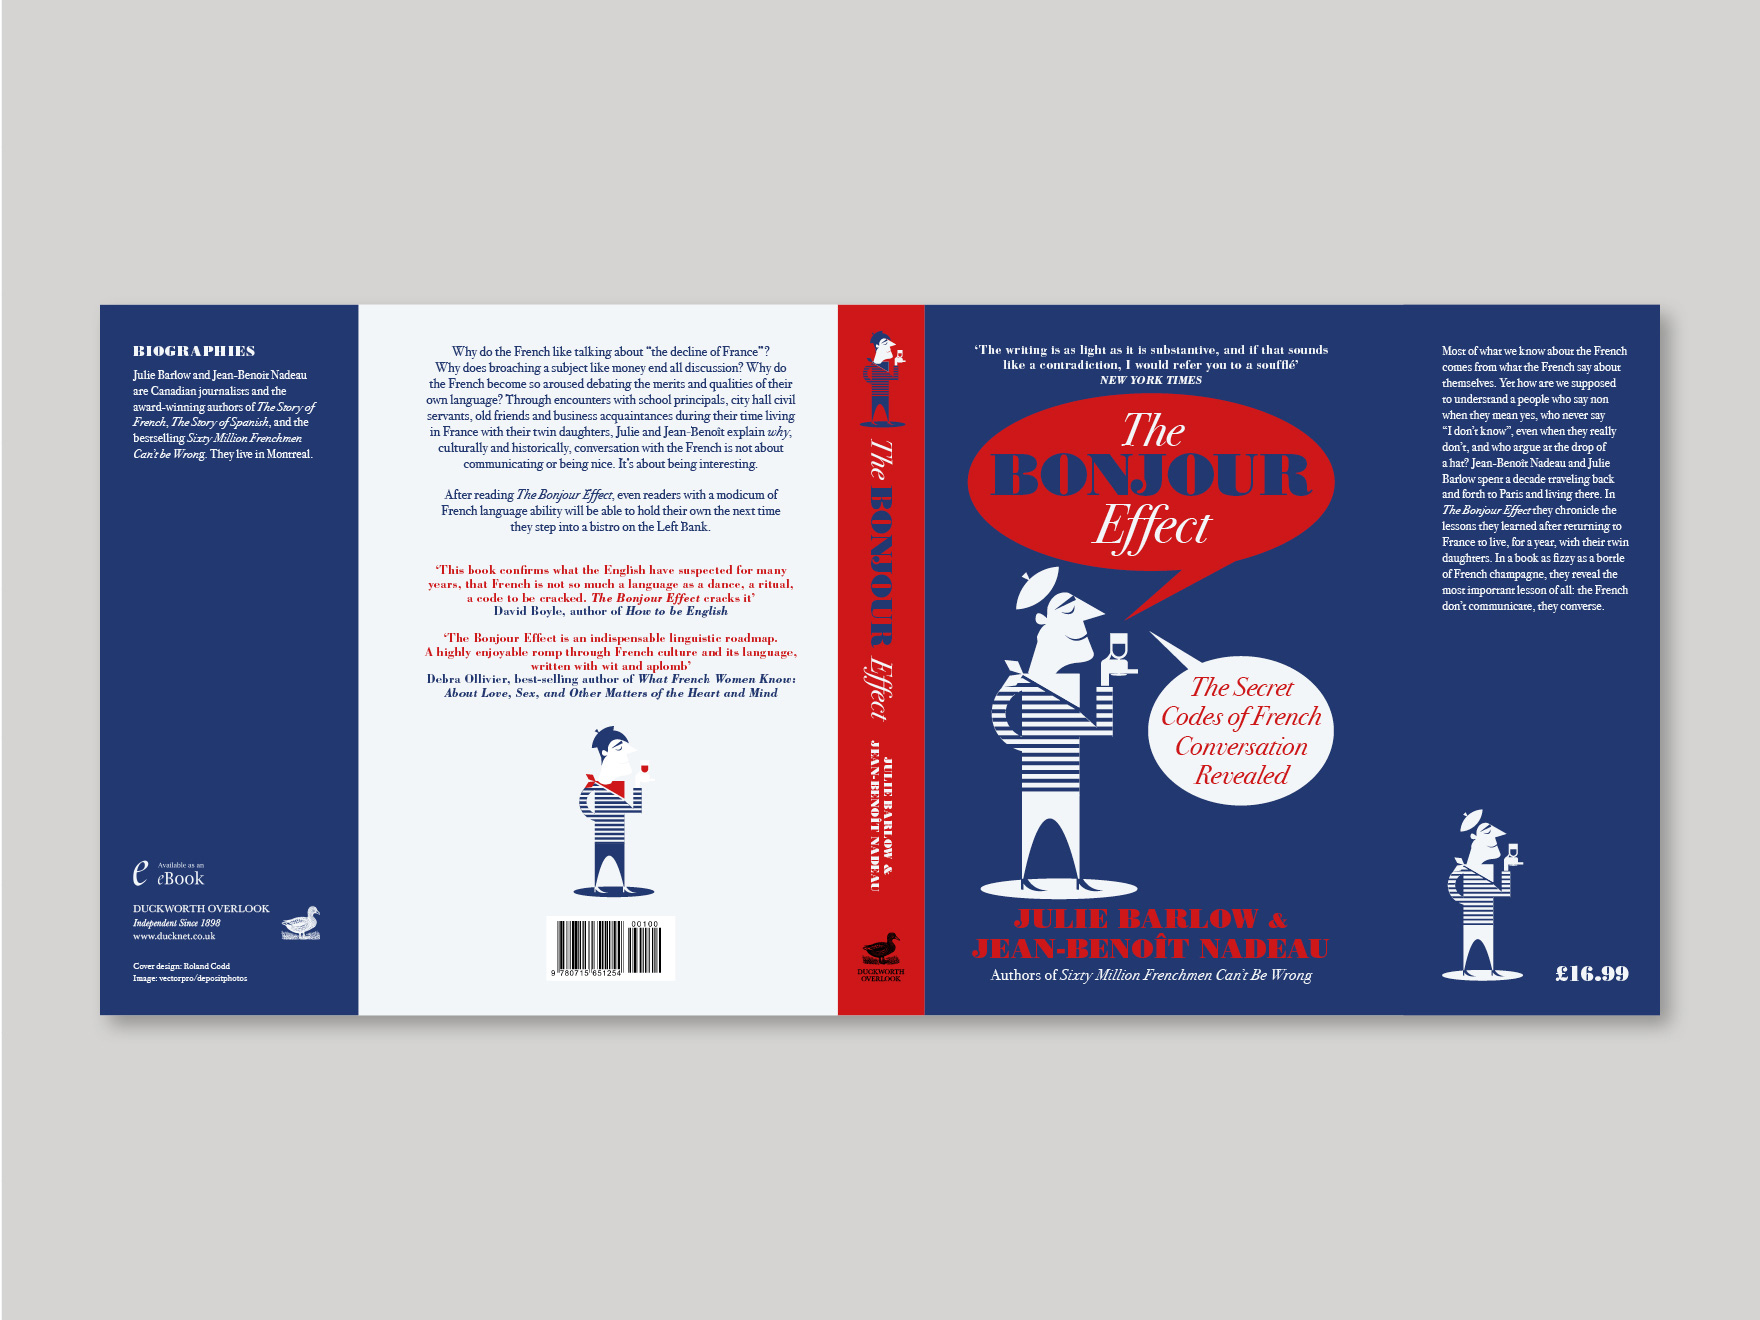 Full book cover to The Bonjour Effect, showing the front, spine, back and flaps